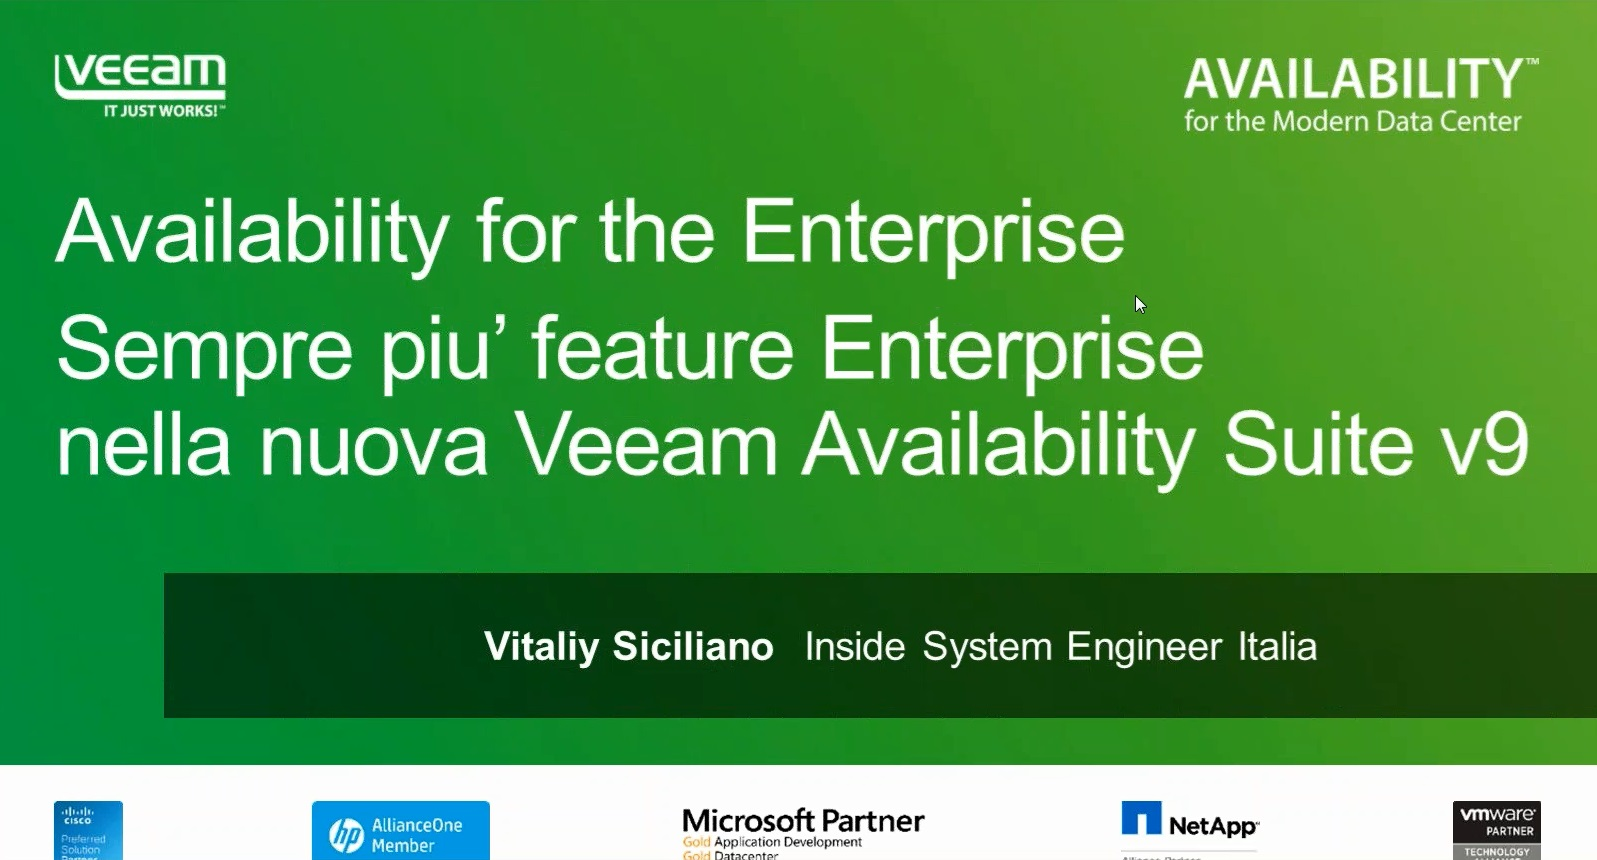 Availability for the Enterprise Sempre piu' feature Enterprise nella nuova Veeam Availability Suite v9